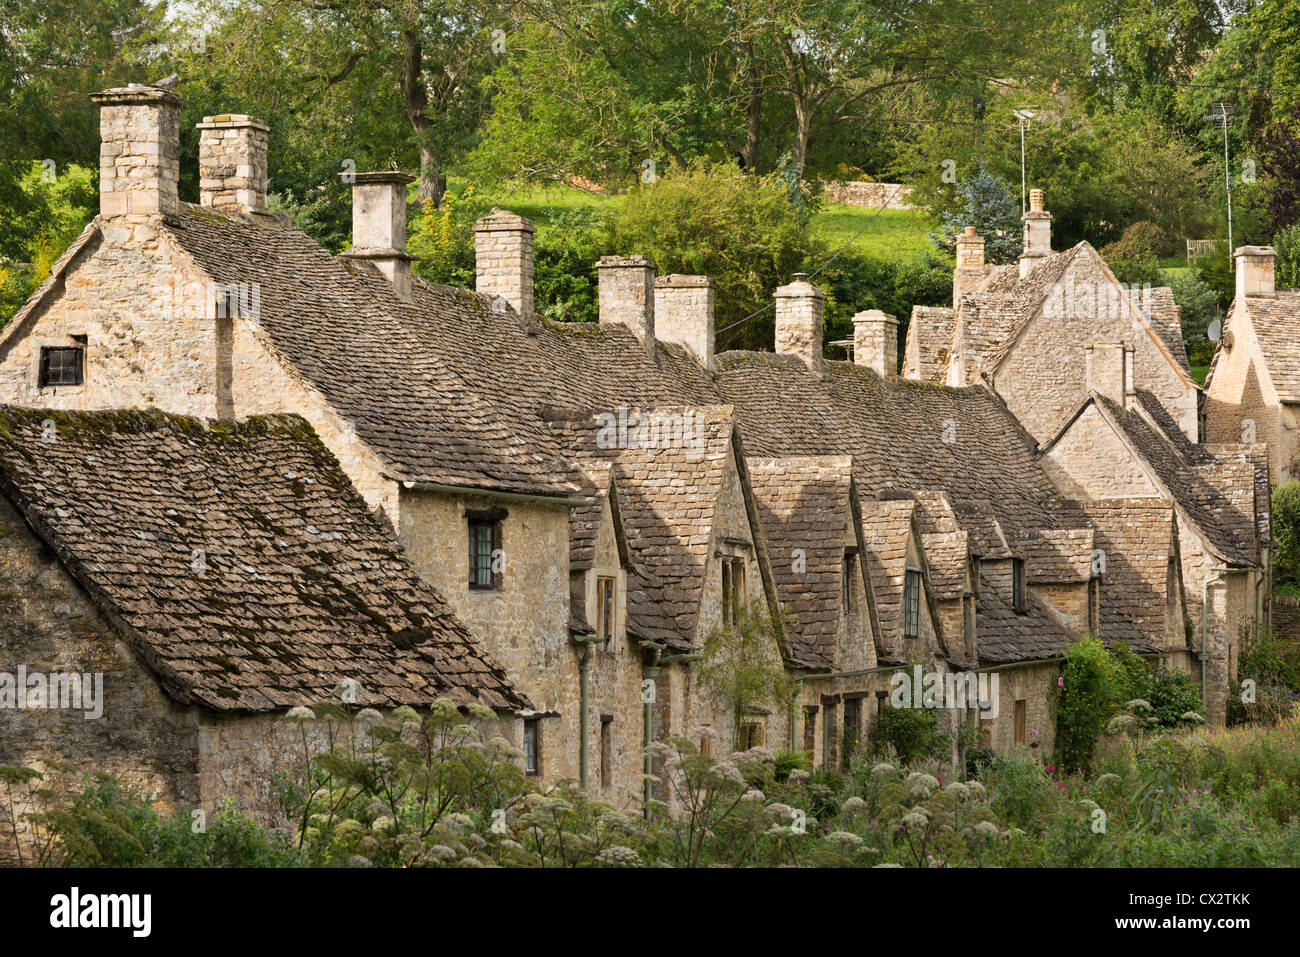 Picturesque cottages at Arlington Row in the Cotswolds village of Bibury, Gloucestershire, England. Summer (September) - Stock Image